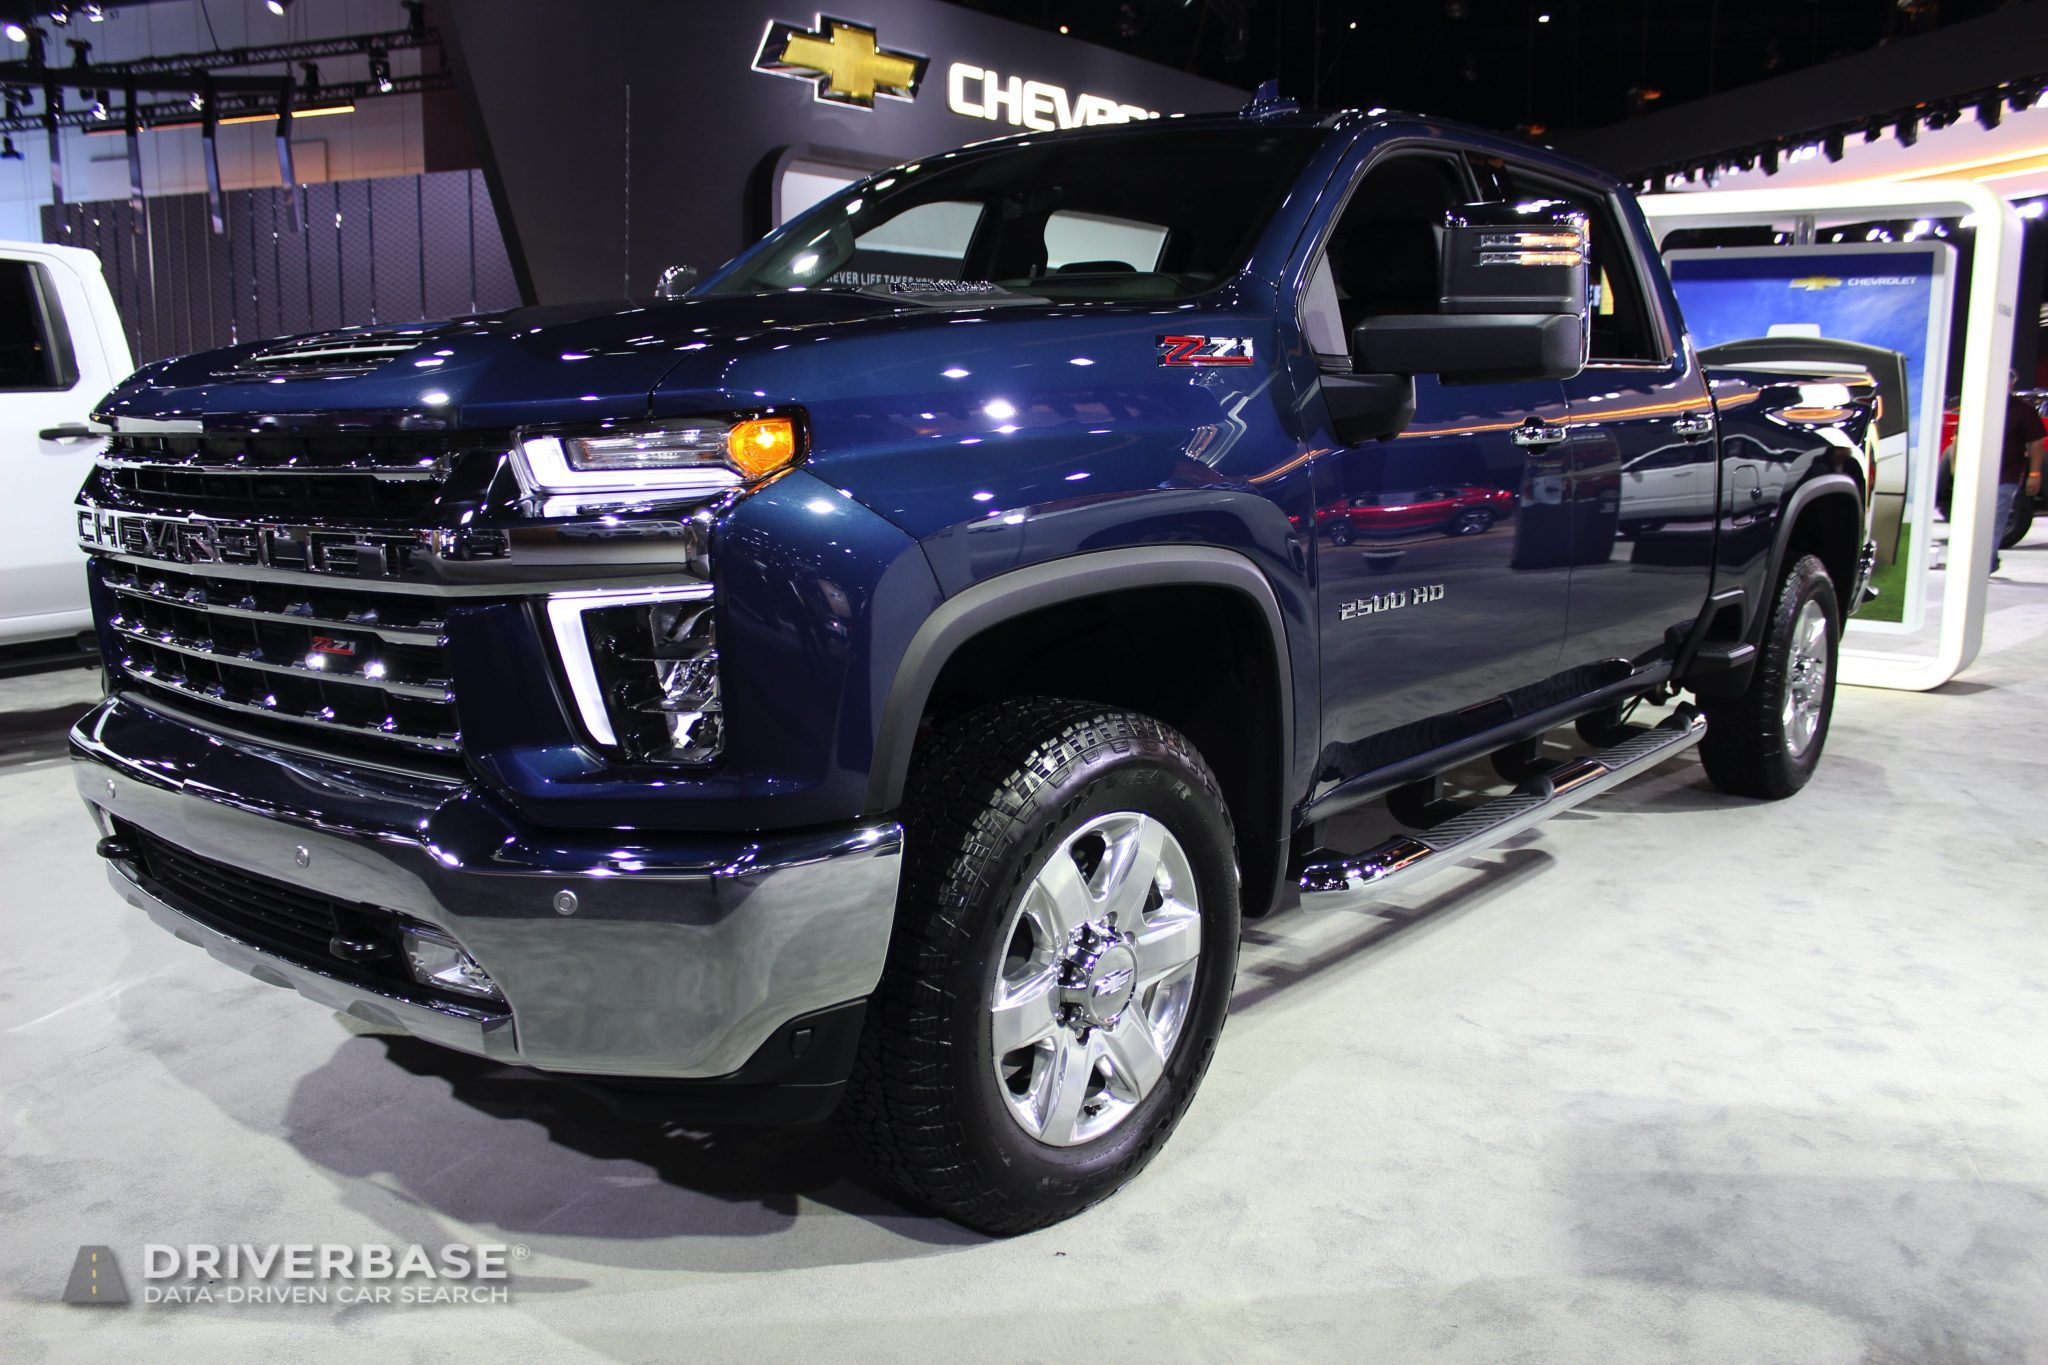 2020 Chevrolet Silverado LTZ at the 2019 Los Angeles Auto Show